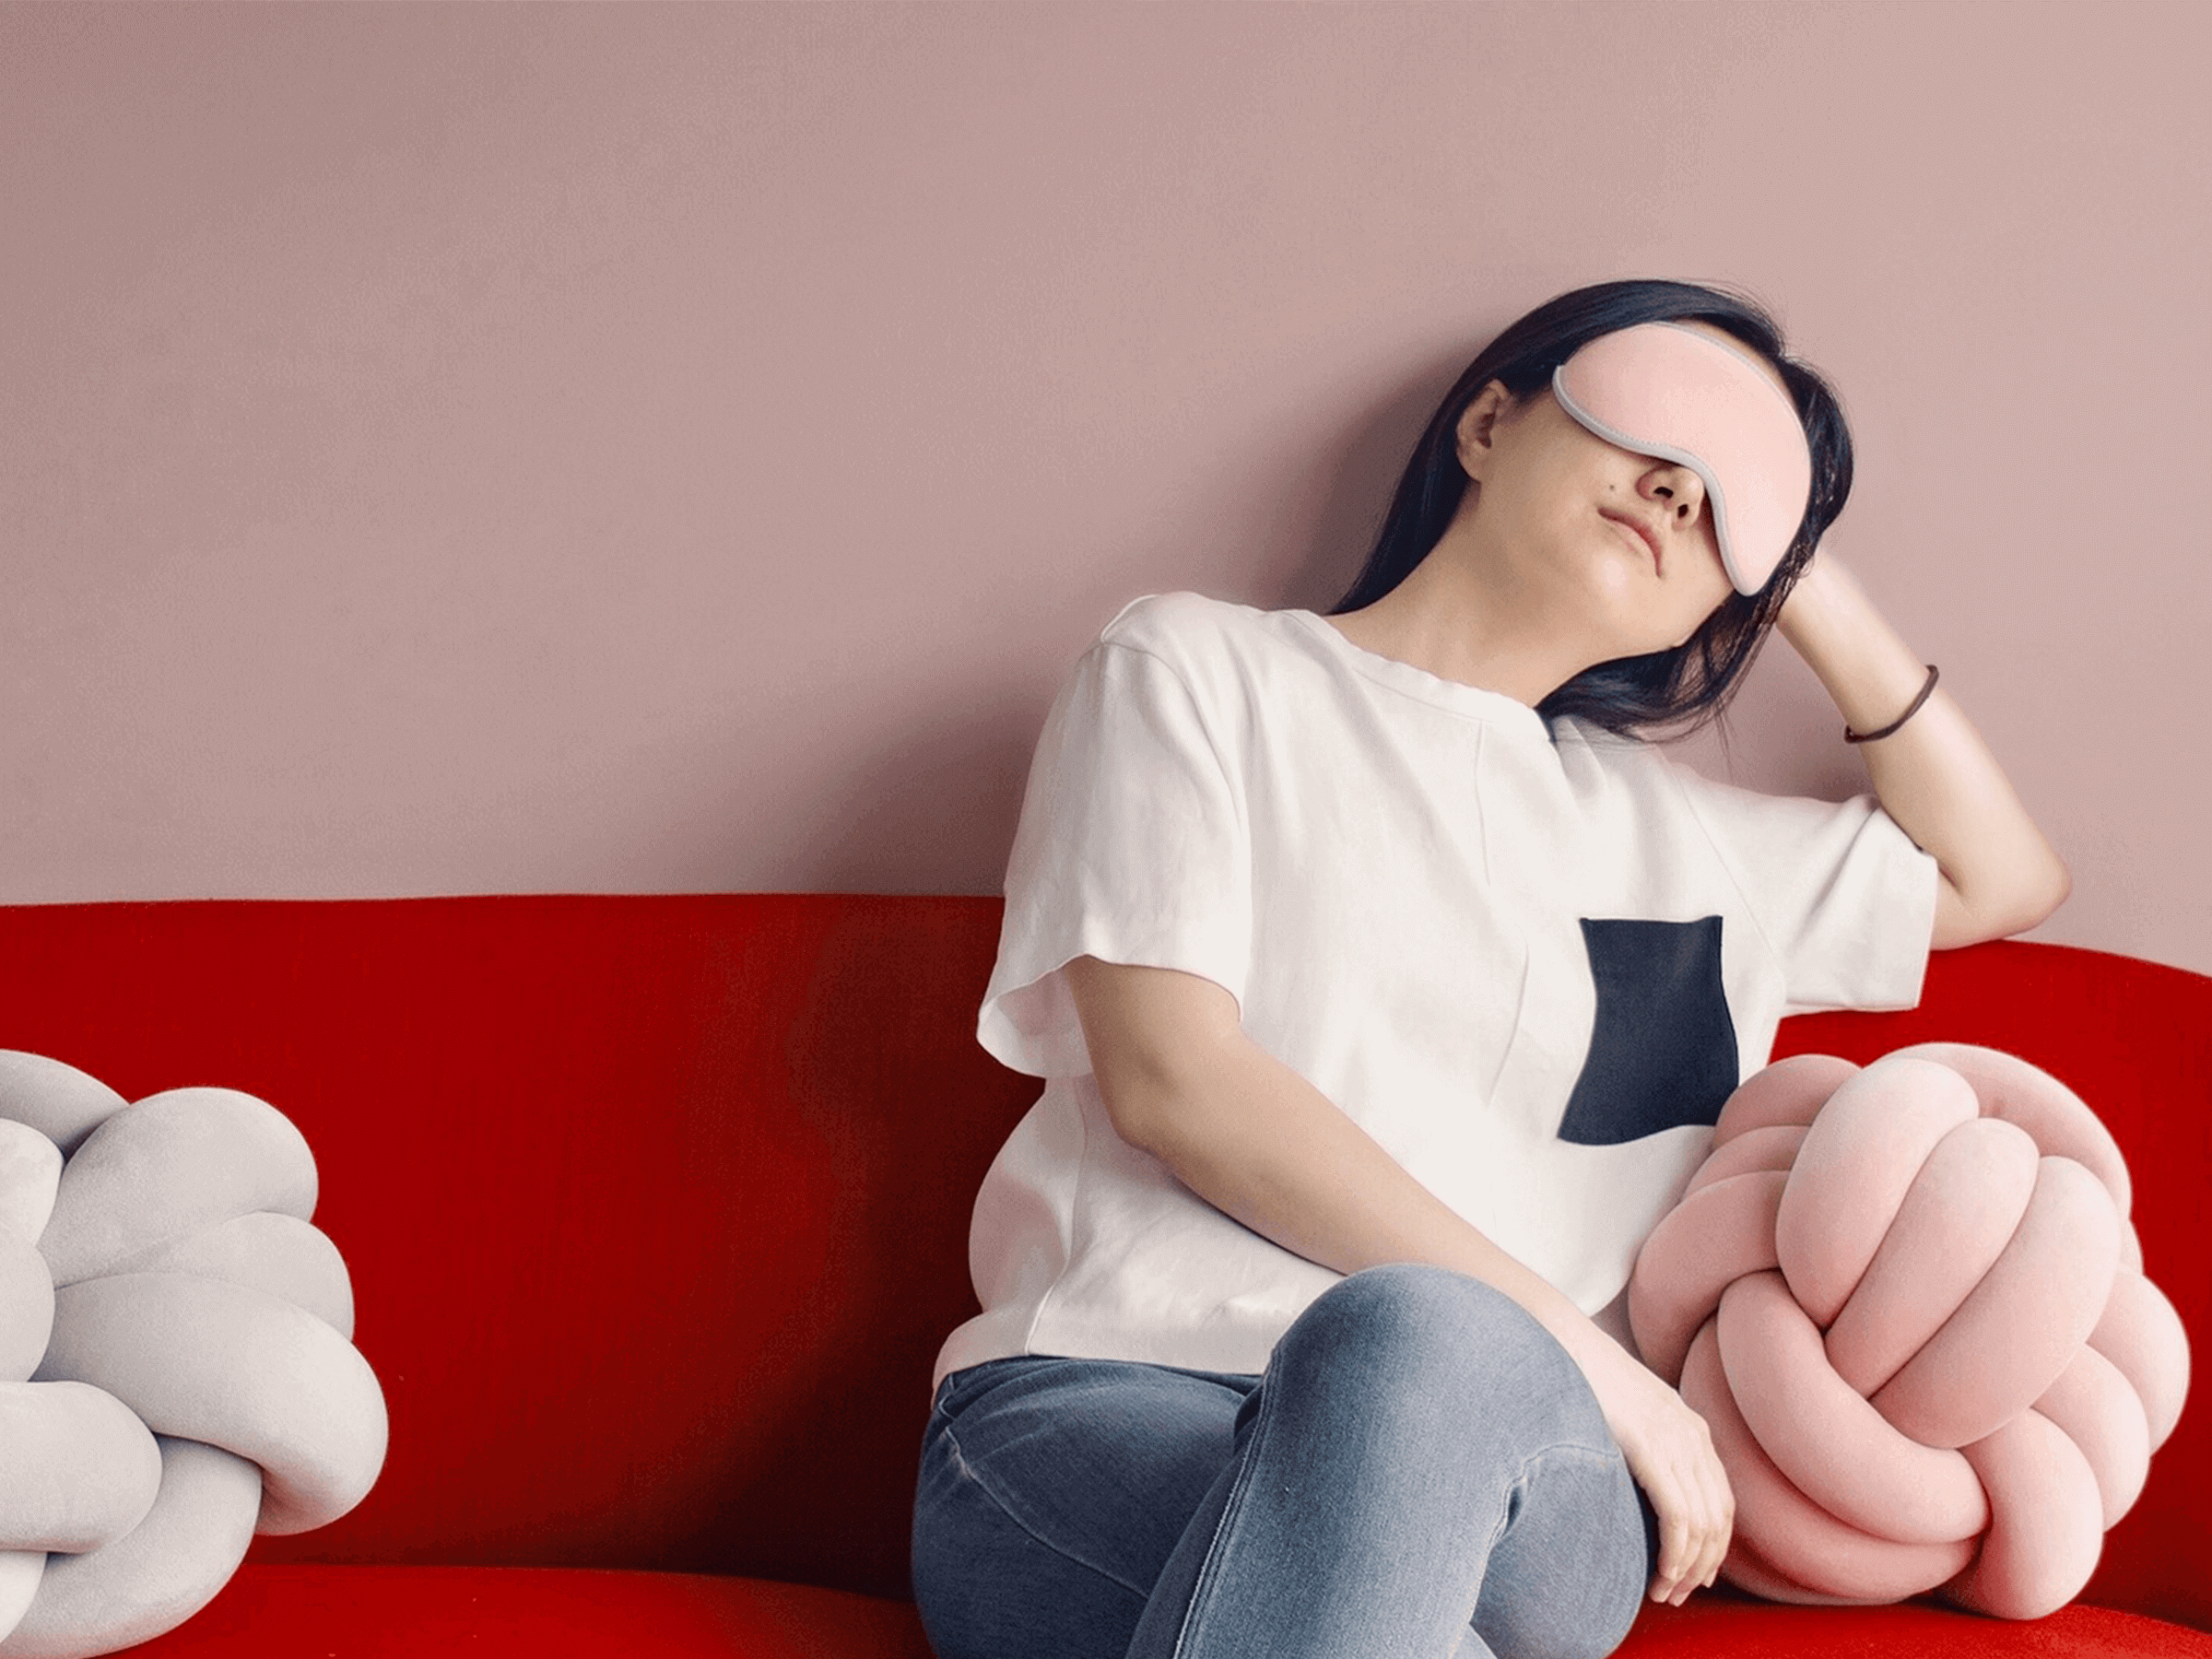 A Sleep Mask With Zero Pressure on Your Eyes - Blossom 3D Sleep Mask